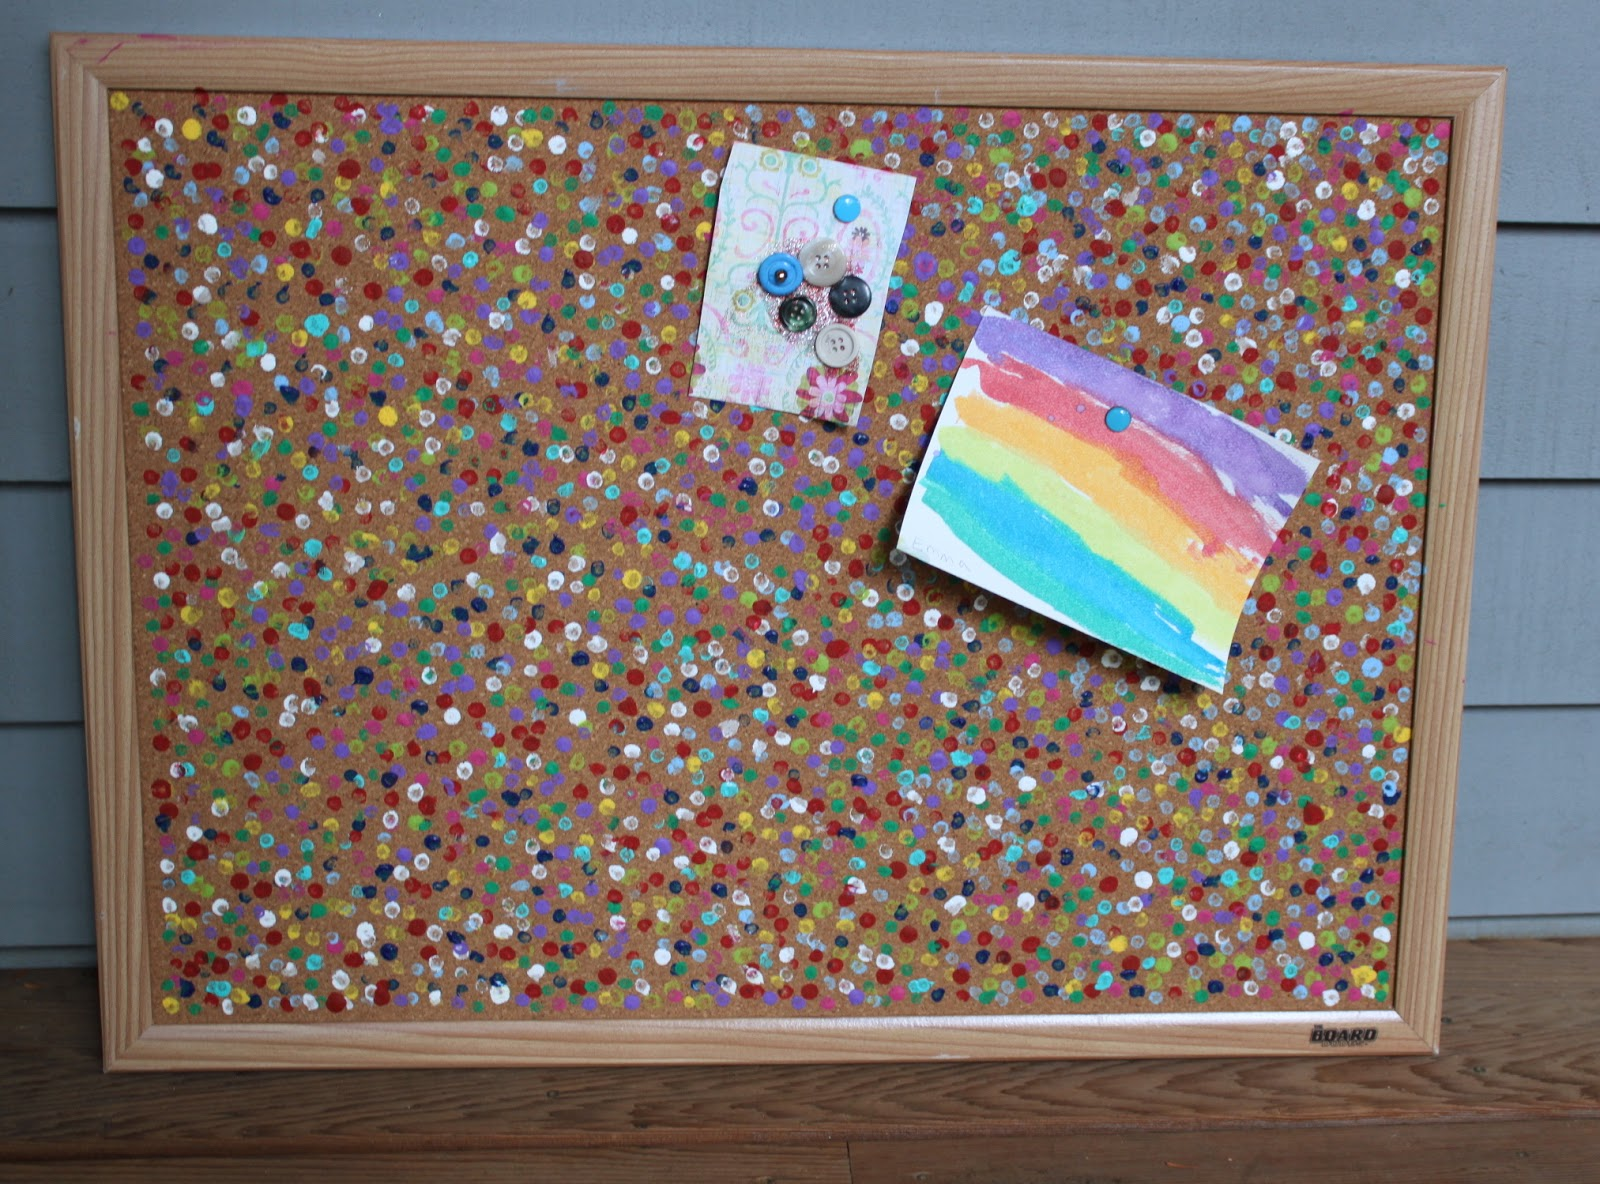 Our end result was colorful, bright and perfect to hang on our art room  wall. It really did look like confetti, just what we had hoped for.